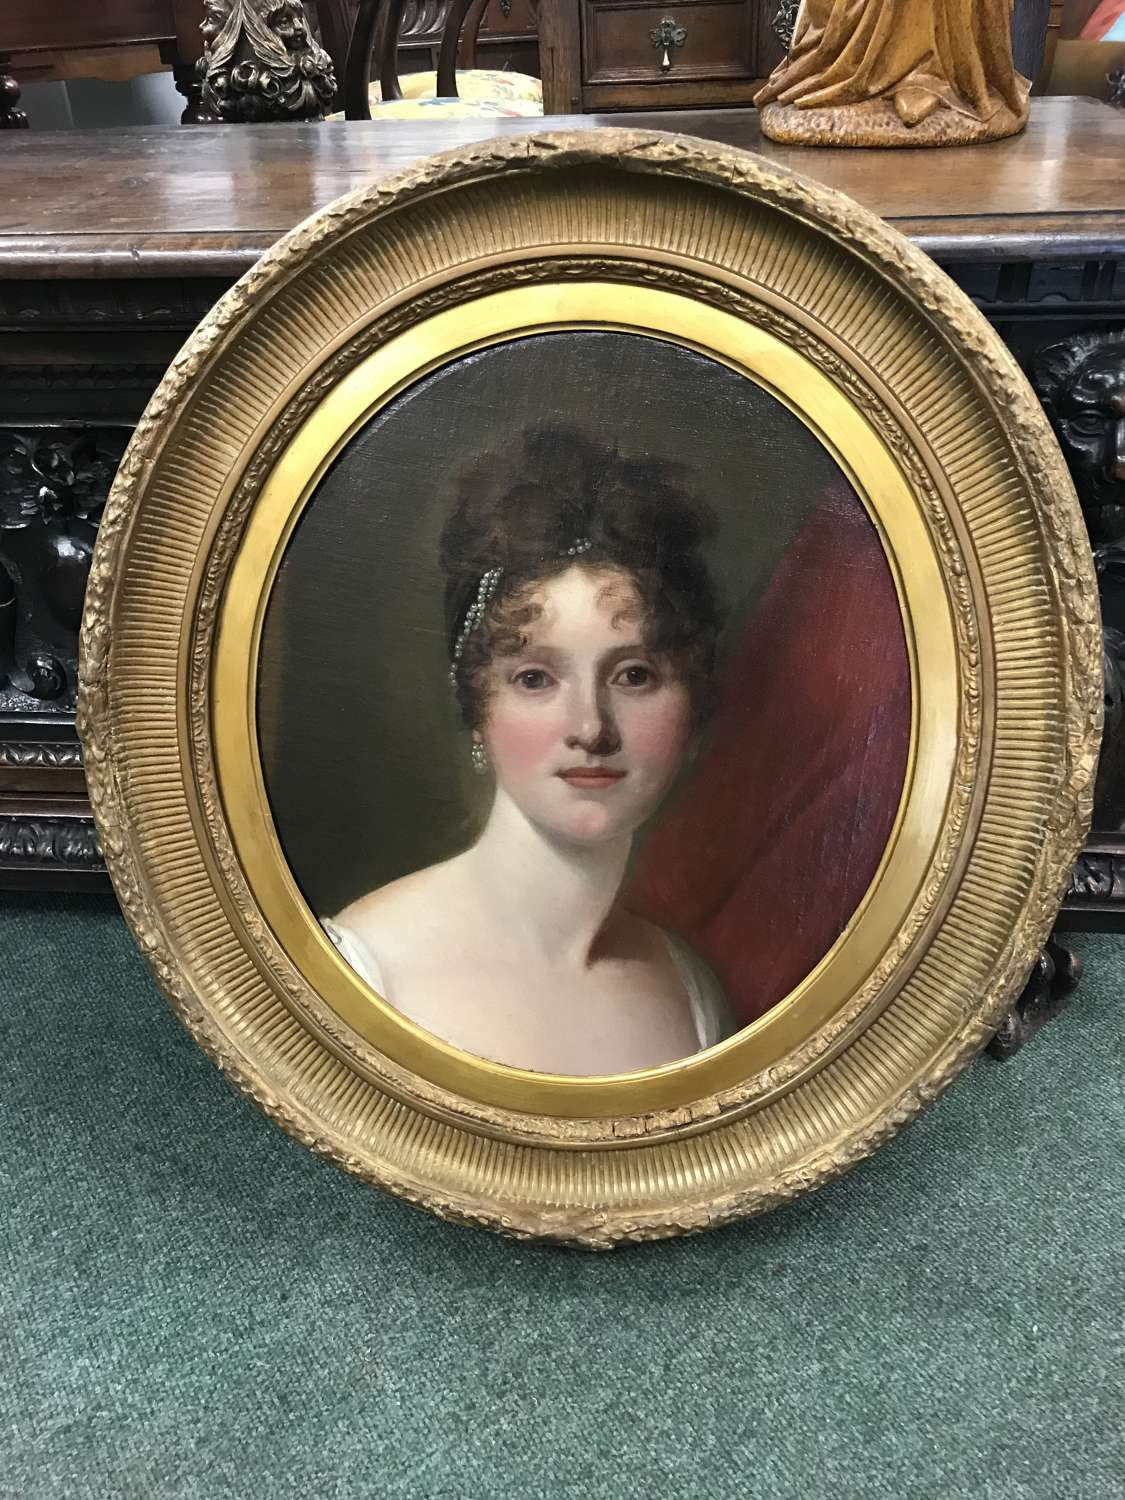 Early 19th Century portrait of a young woman